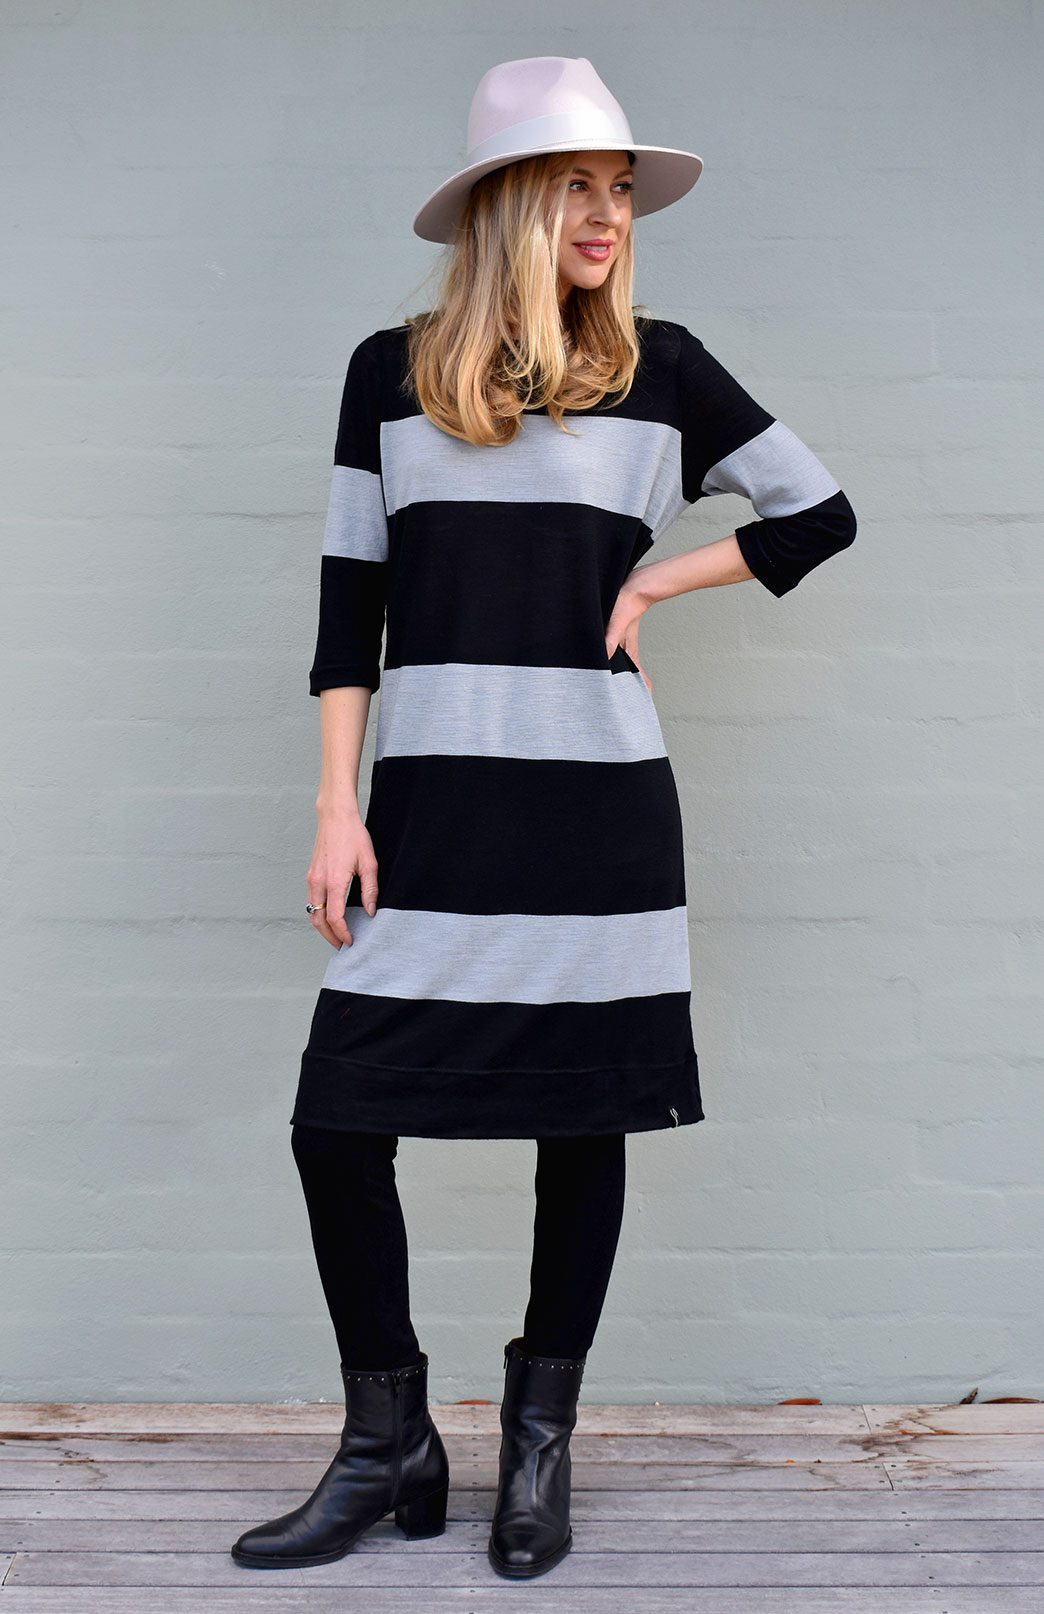 Audrey Shift Dress - Women's Striped 100% Superfine Merino Wool Classic Knee Length Dress - Smitten Merino Tasmania Australia